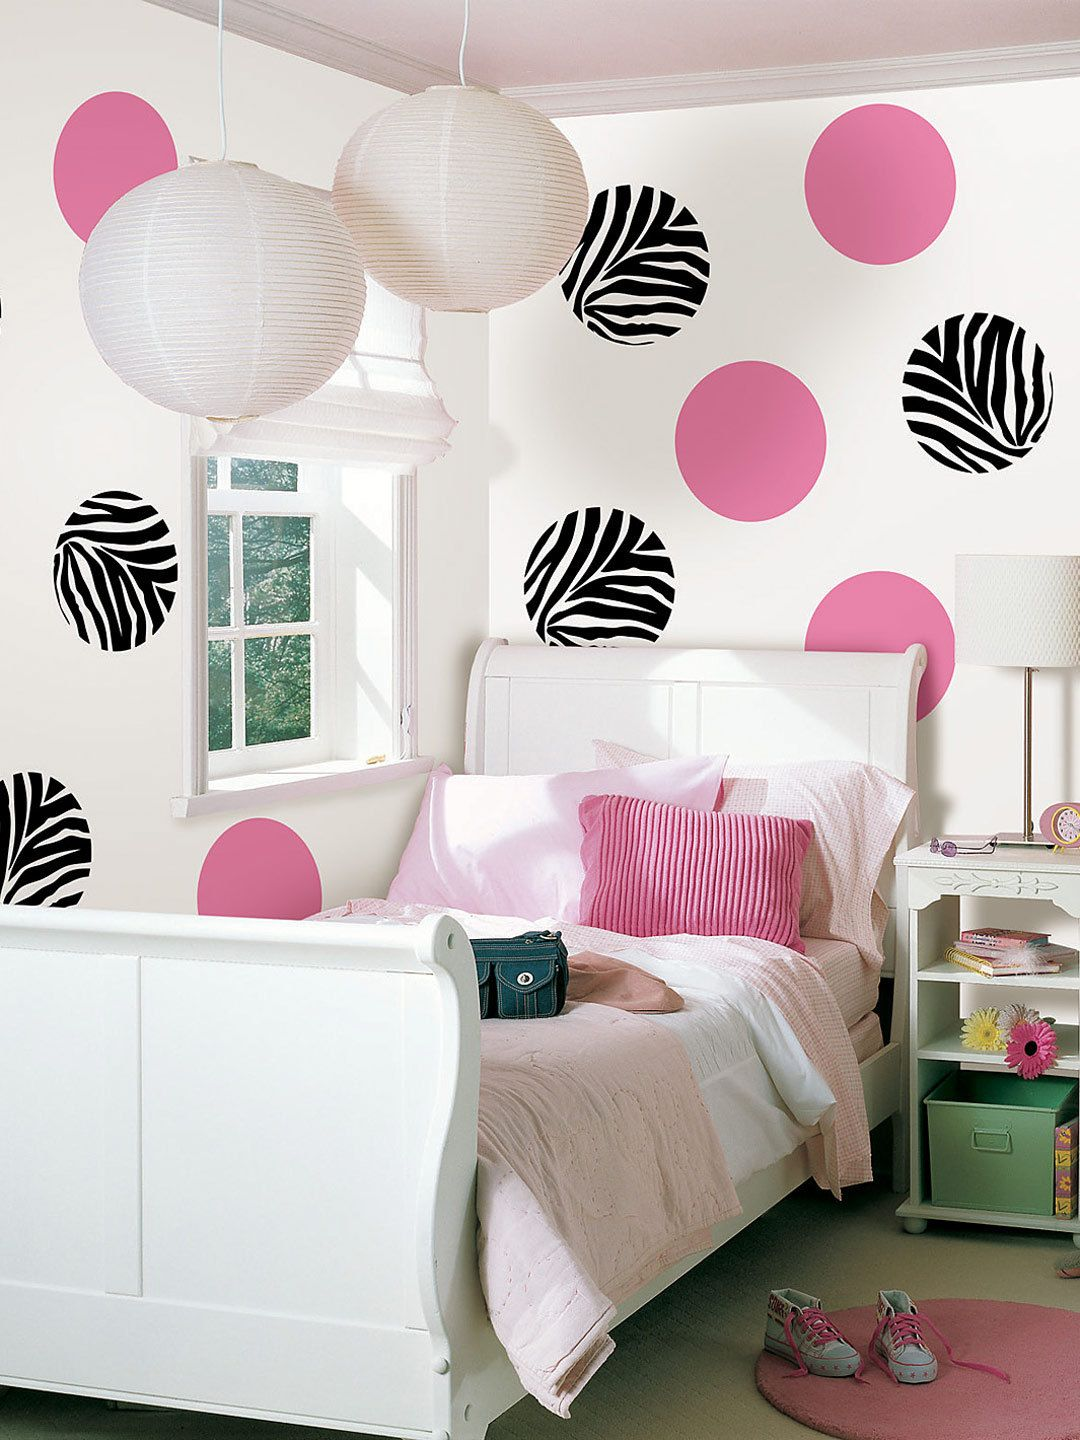 I Love These Zebra Dot Accents On The Wall Perfect Print Decor